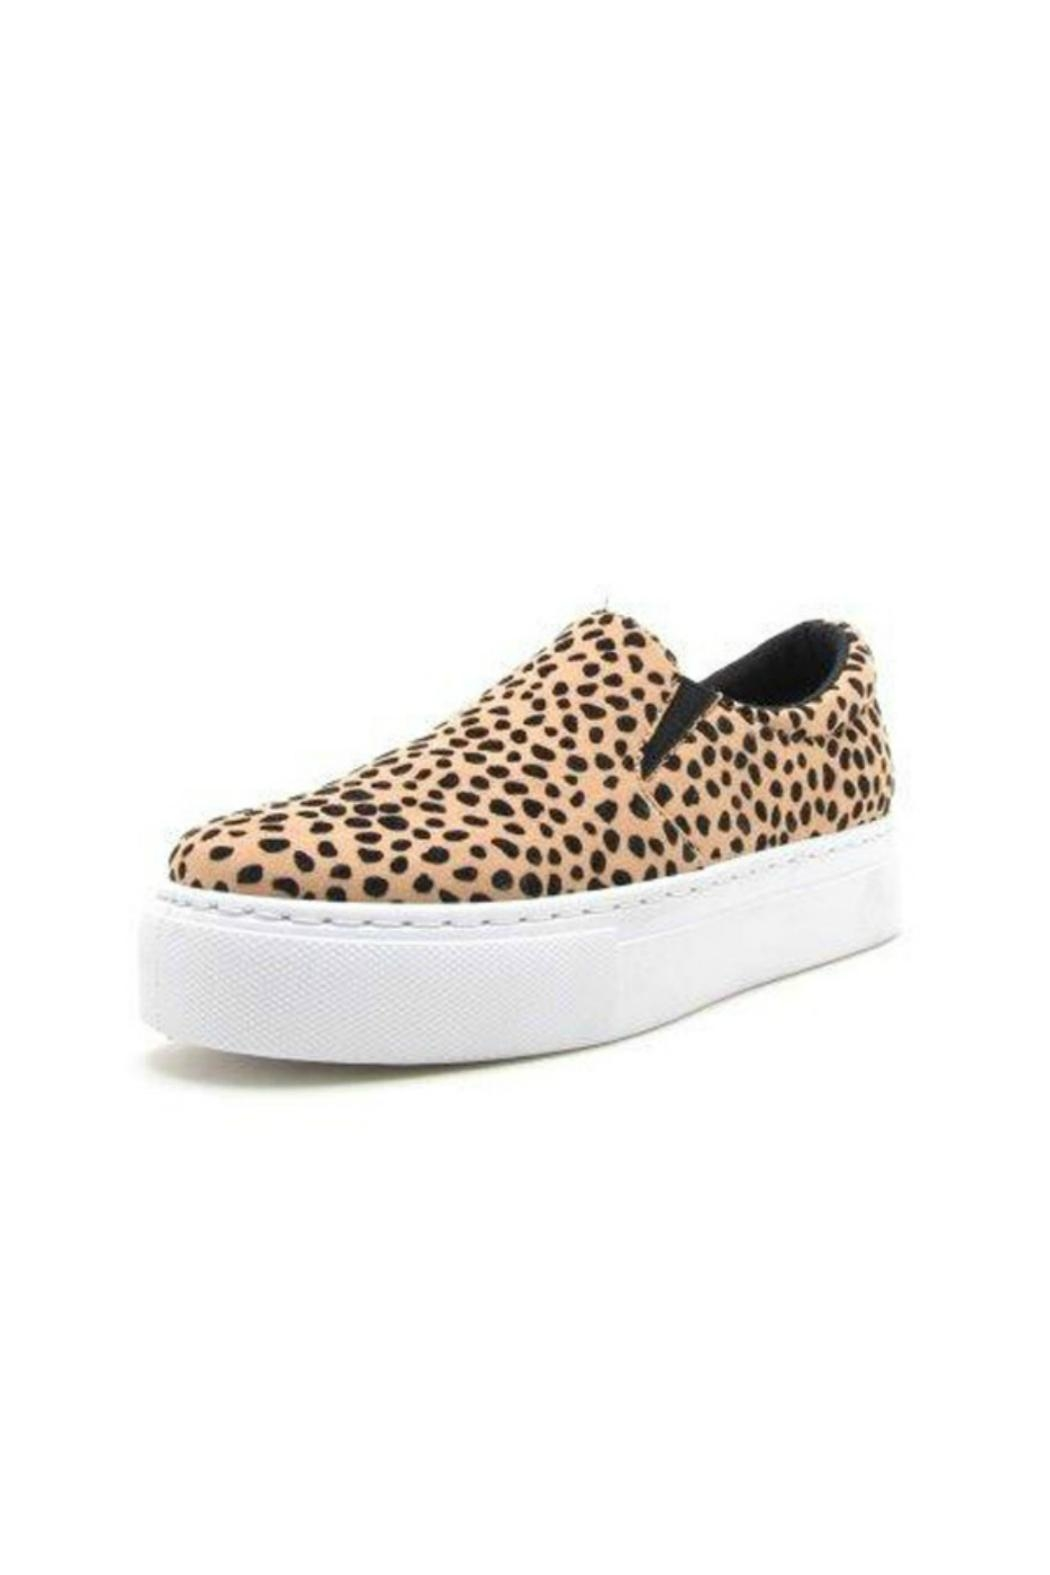 Qupid Showoff Leopard Sneakers from